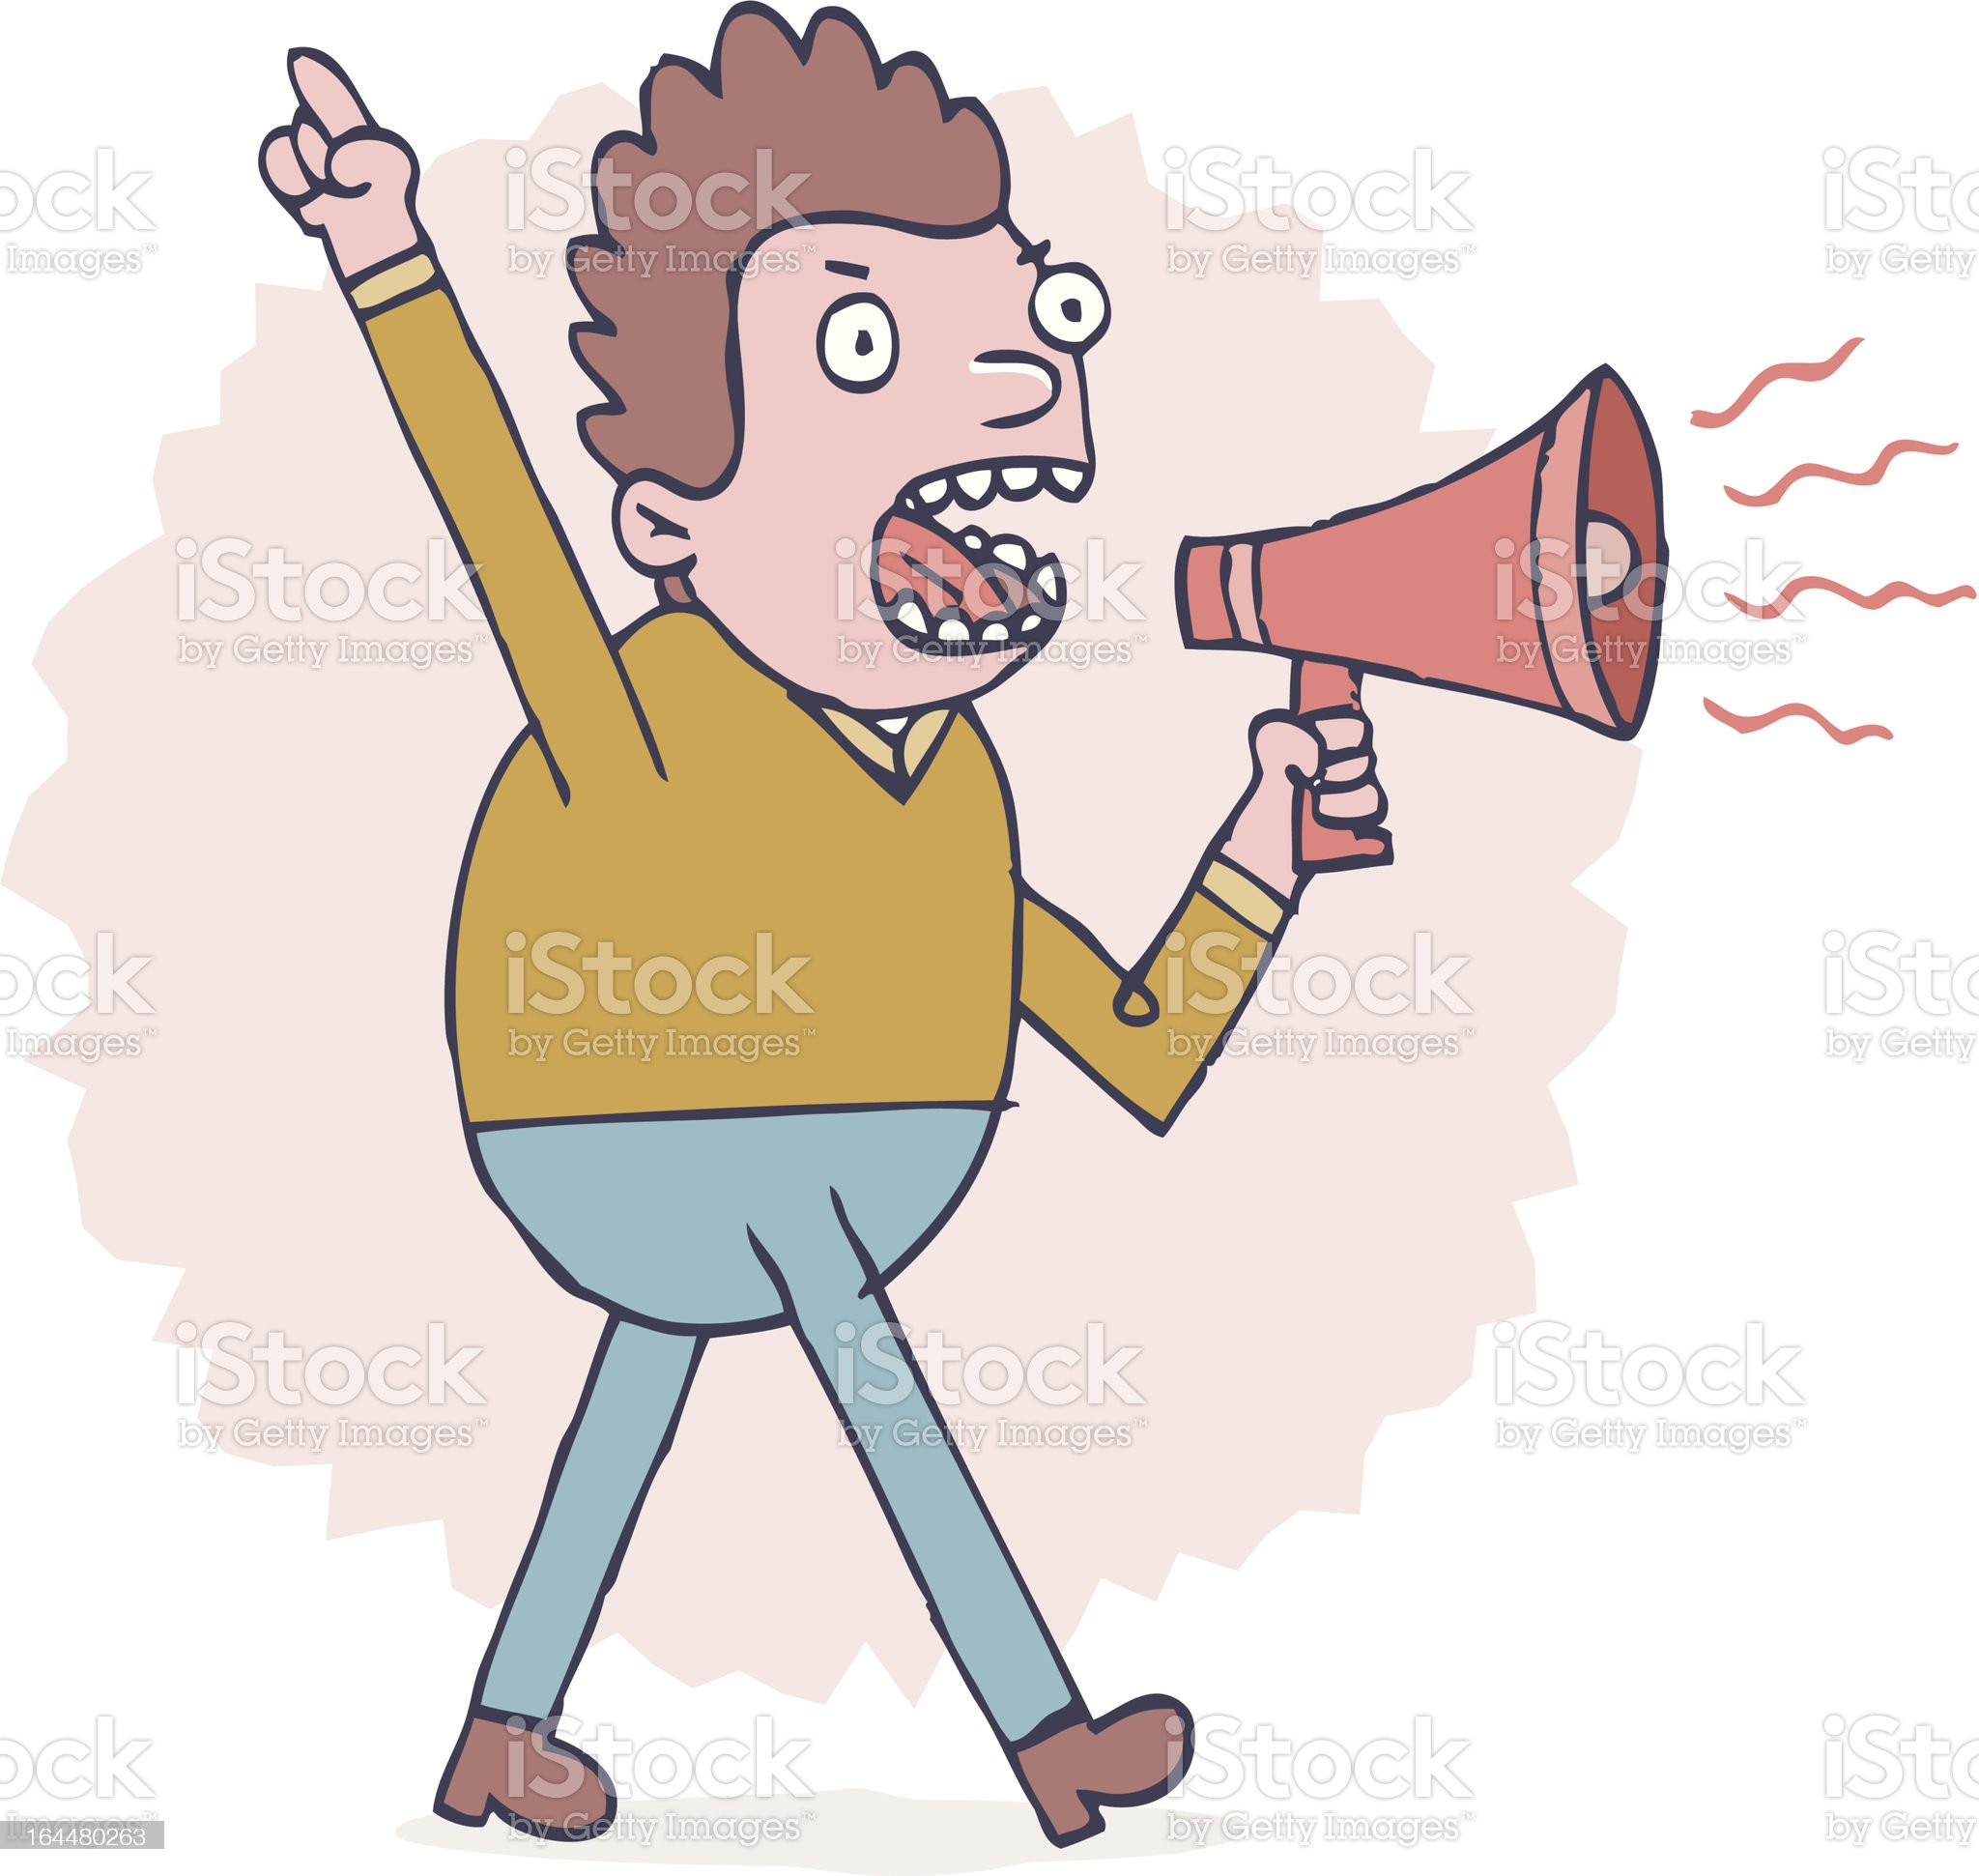 Angry with megaphone royalty-free stock vector art